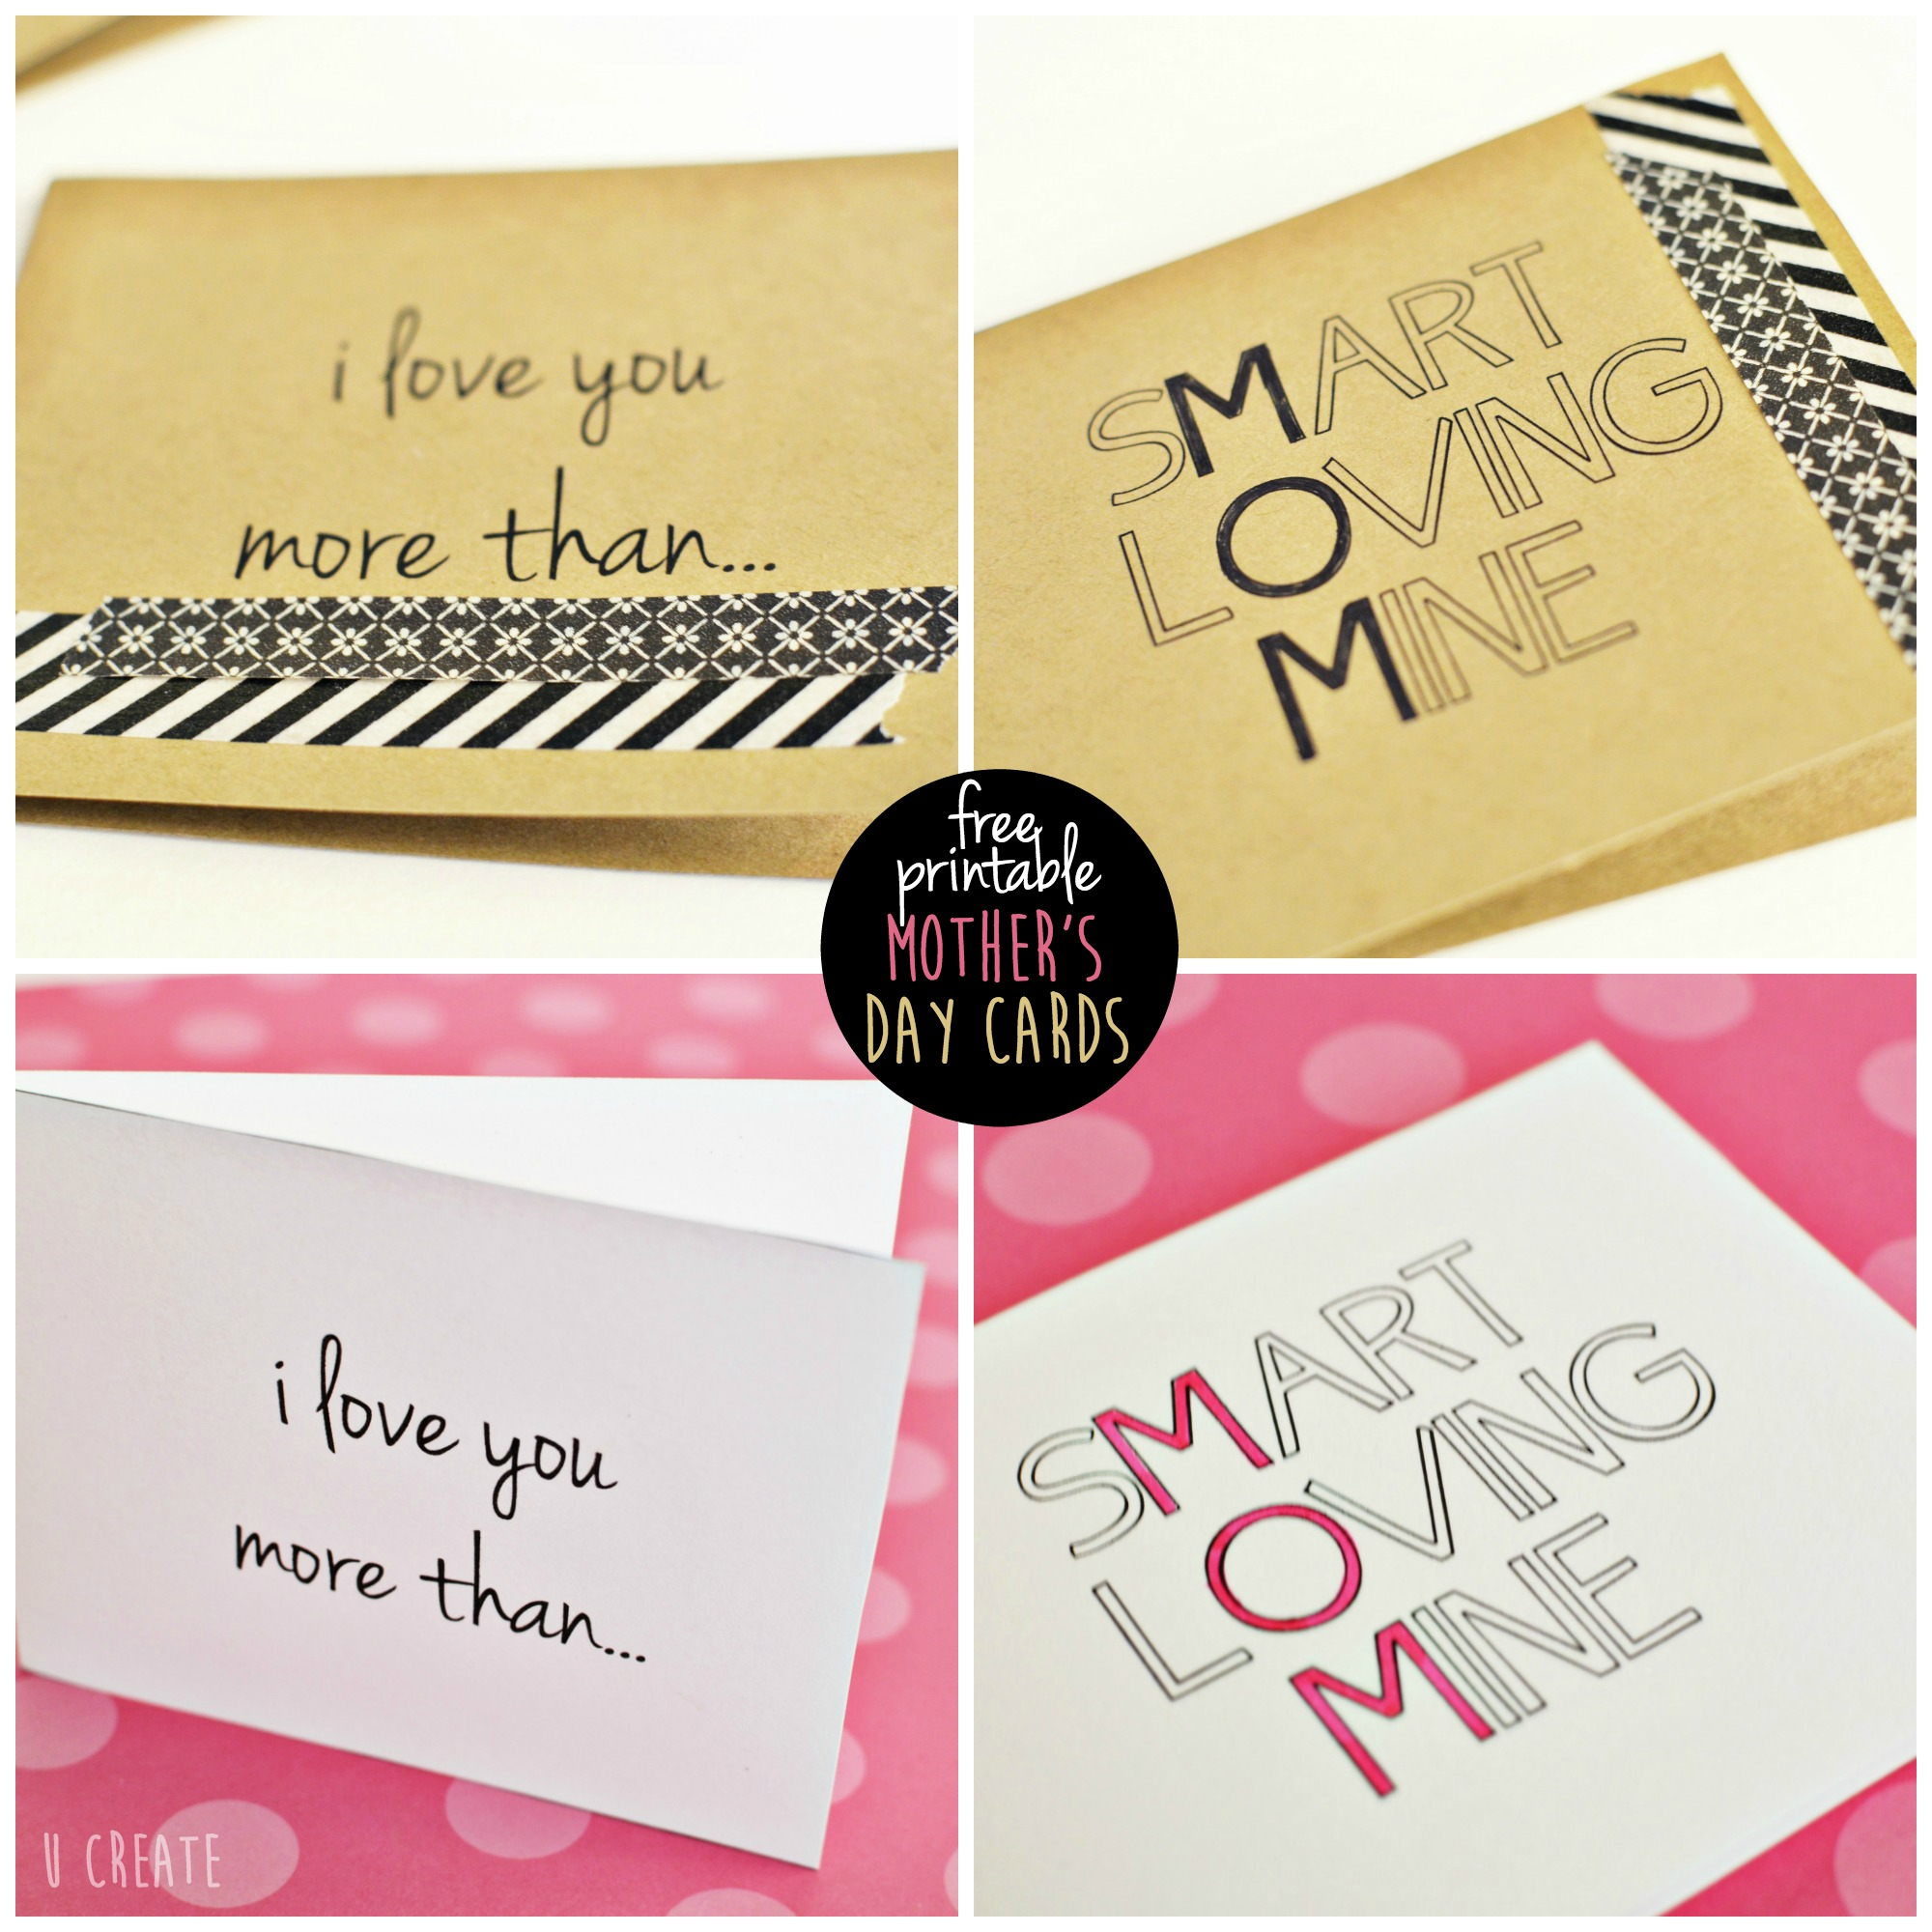 Free Printable Mother's Day Cards by U Create